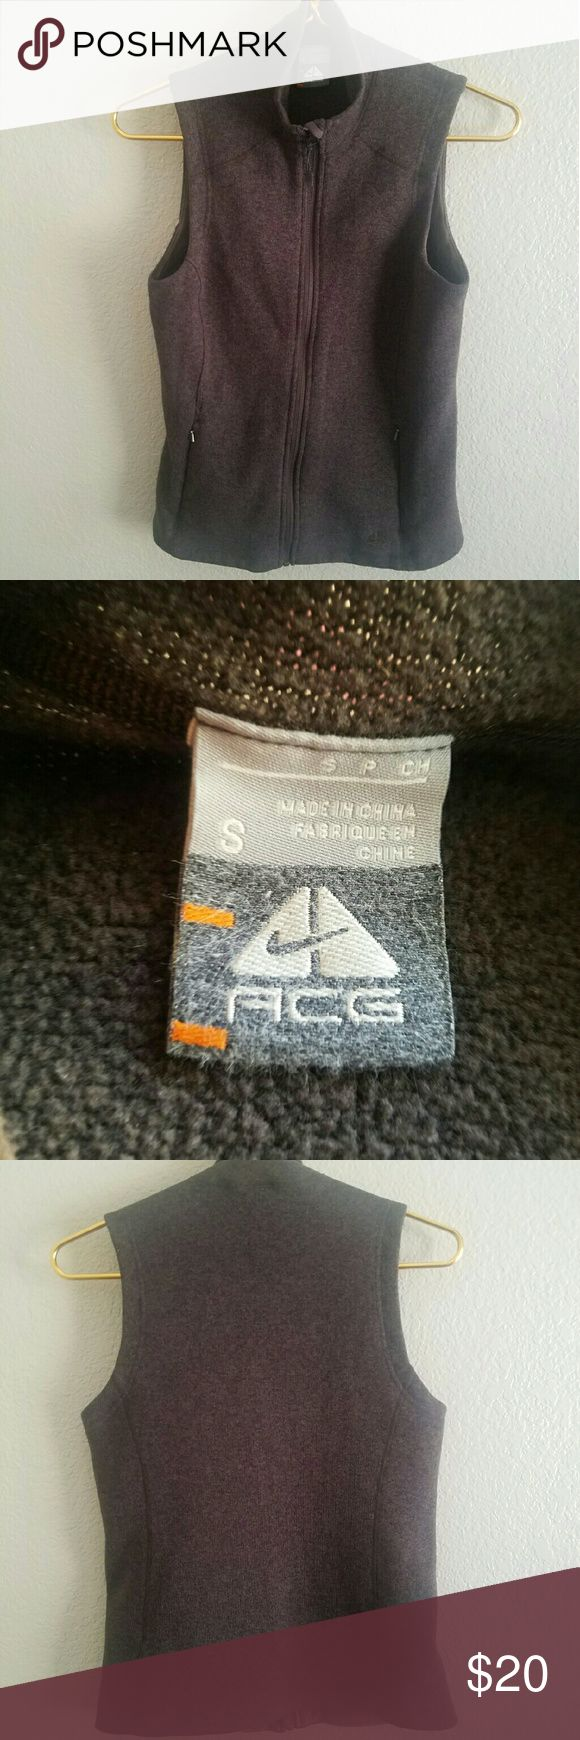 Nike ACG Women's Vest Similar style to Patagonia's Better Sweater. Nike's ACG  (All Conditions Gear) is their outdoor line. Size small. Good condition. Nike Jackets & Coats Vests